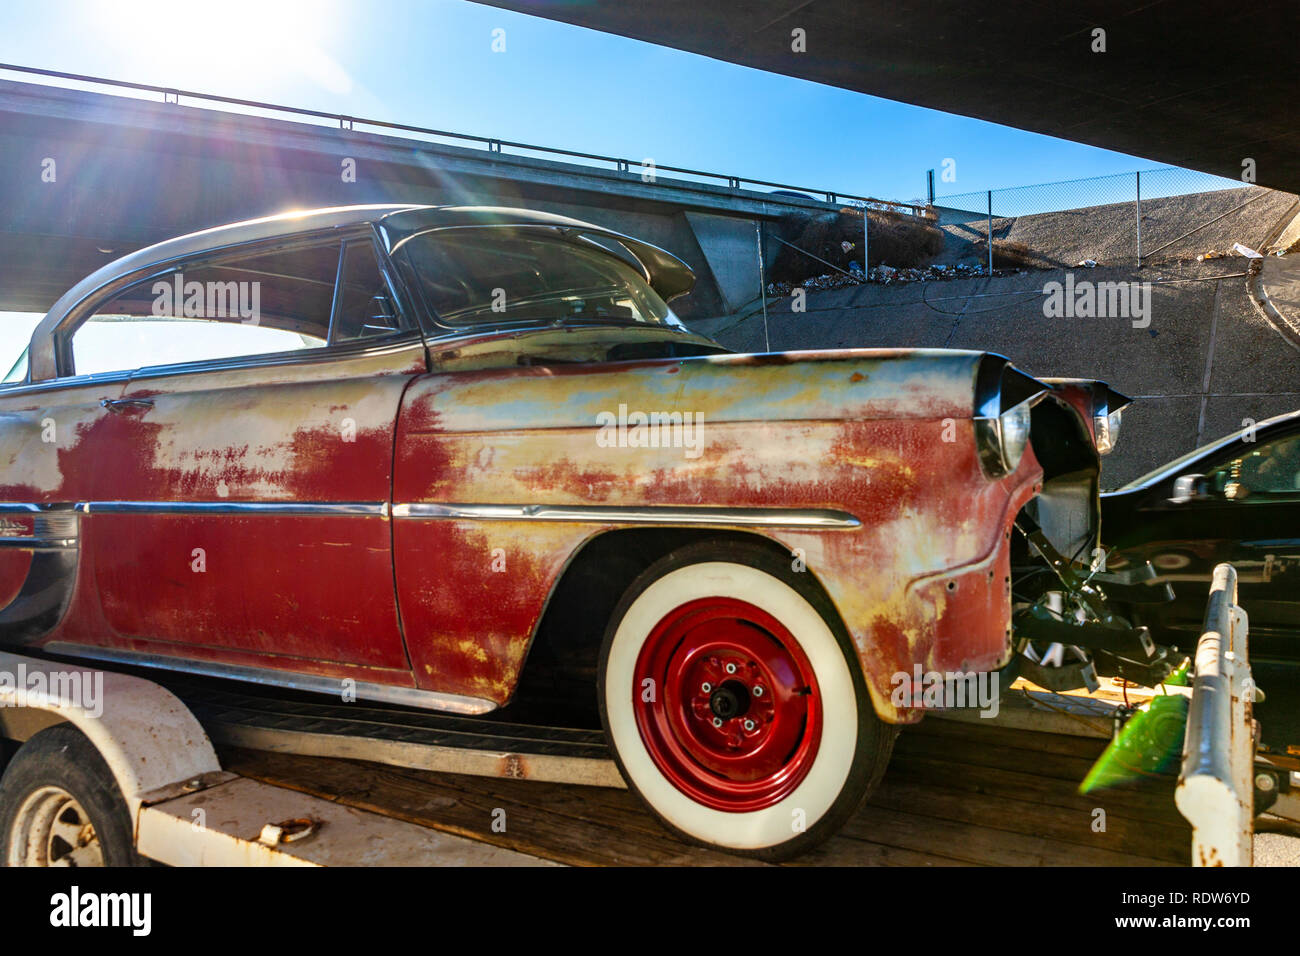 A 1954 Chevrolet Bel Air two door hardtop sports coupe in need of some TLC on a trailer - Stock Image